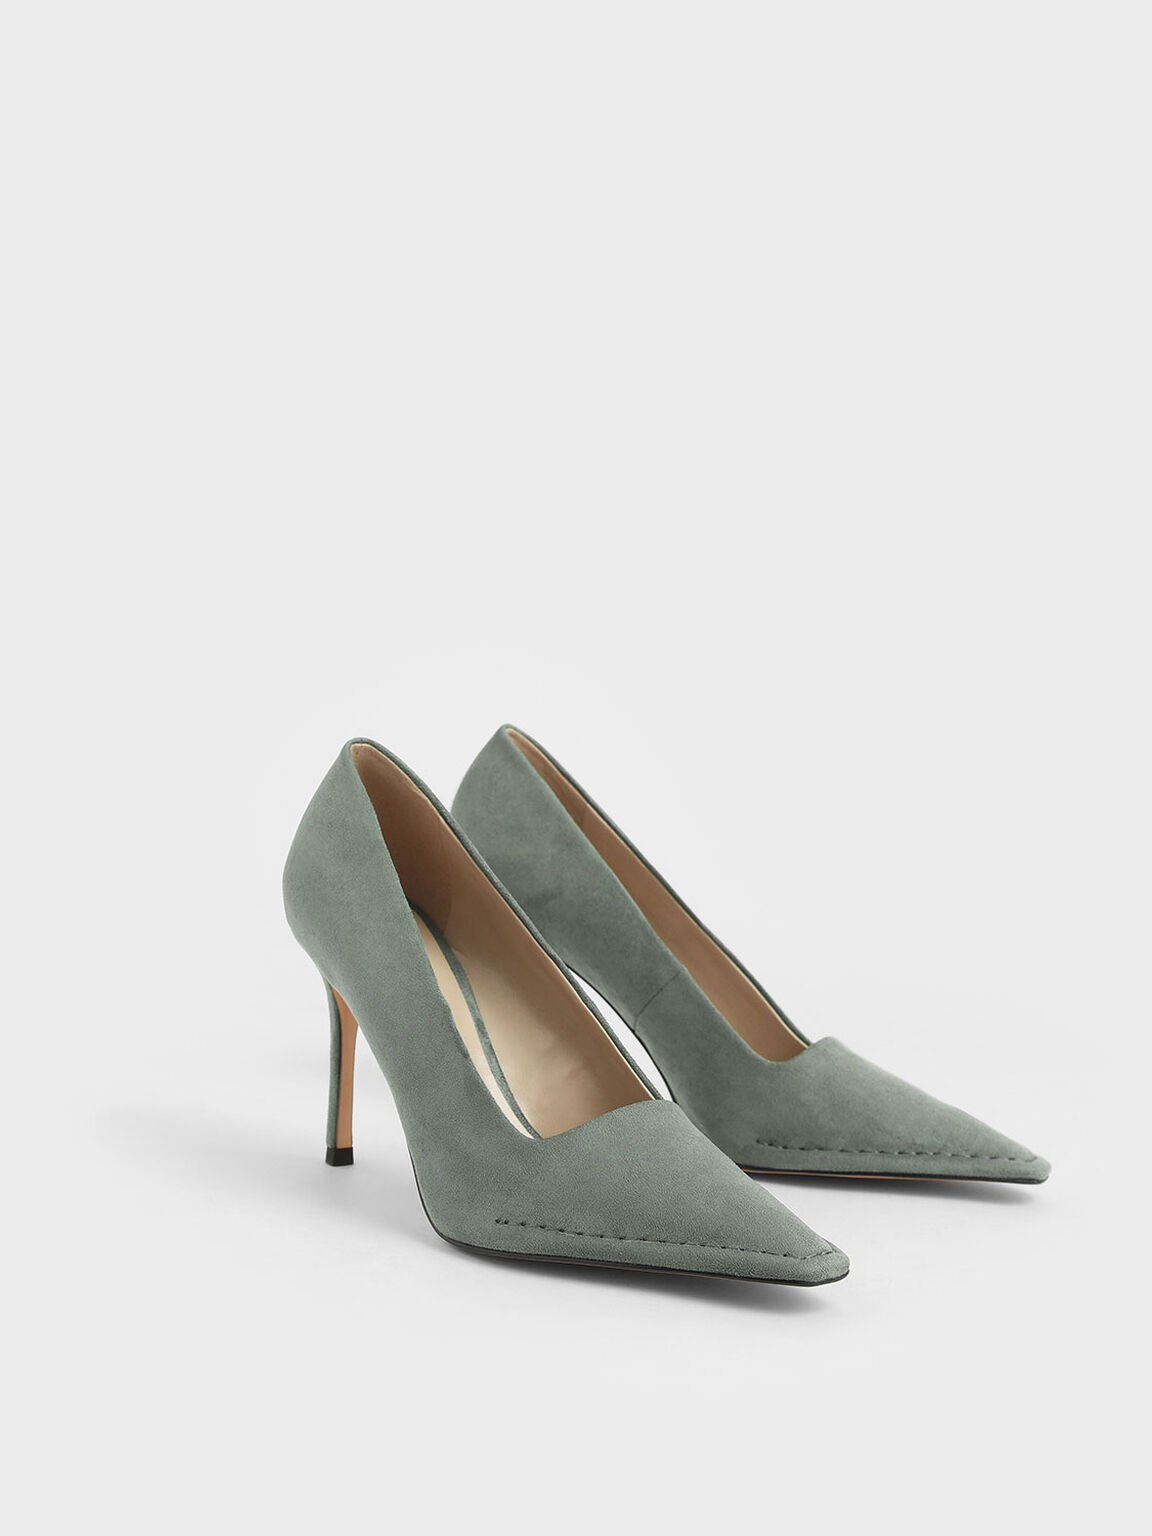 Stitch Trim Textured Stiletto Pumps, Sage Green, hi-res